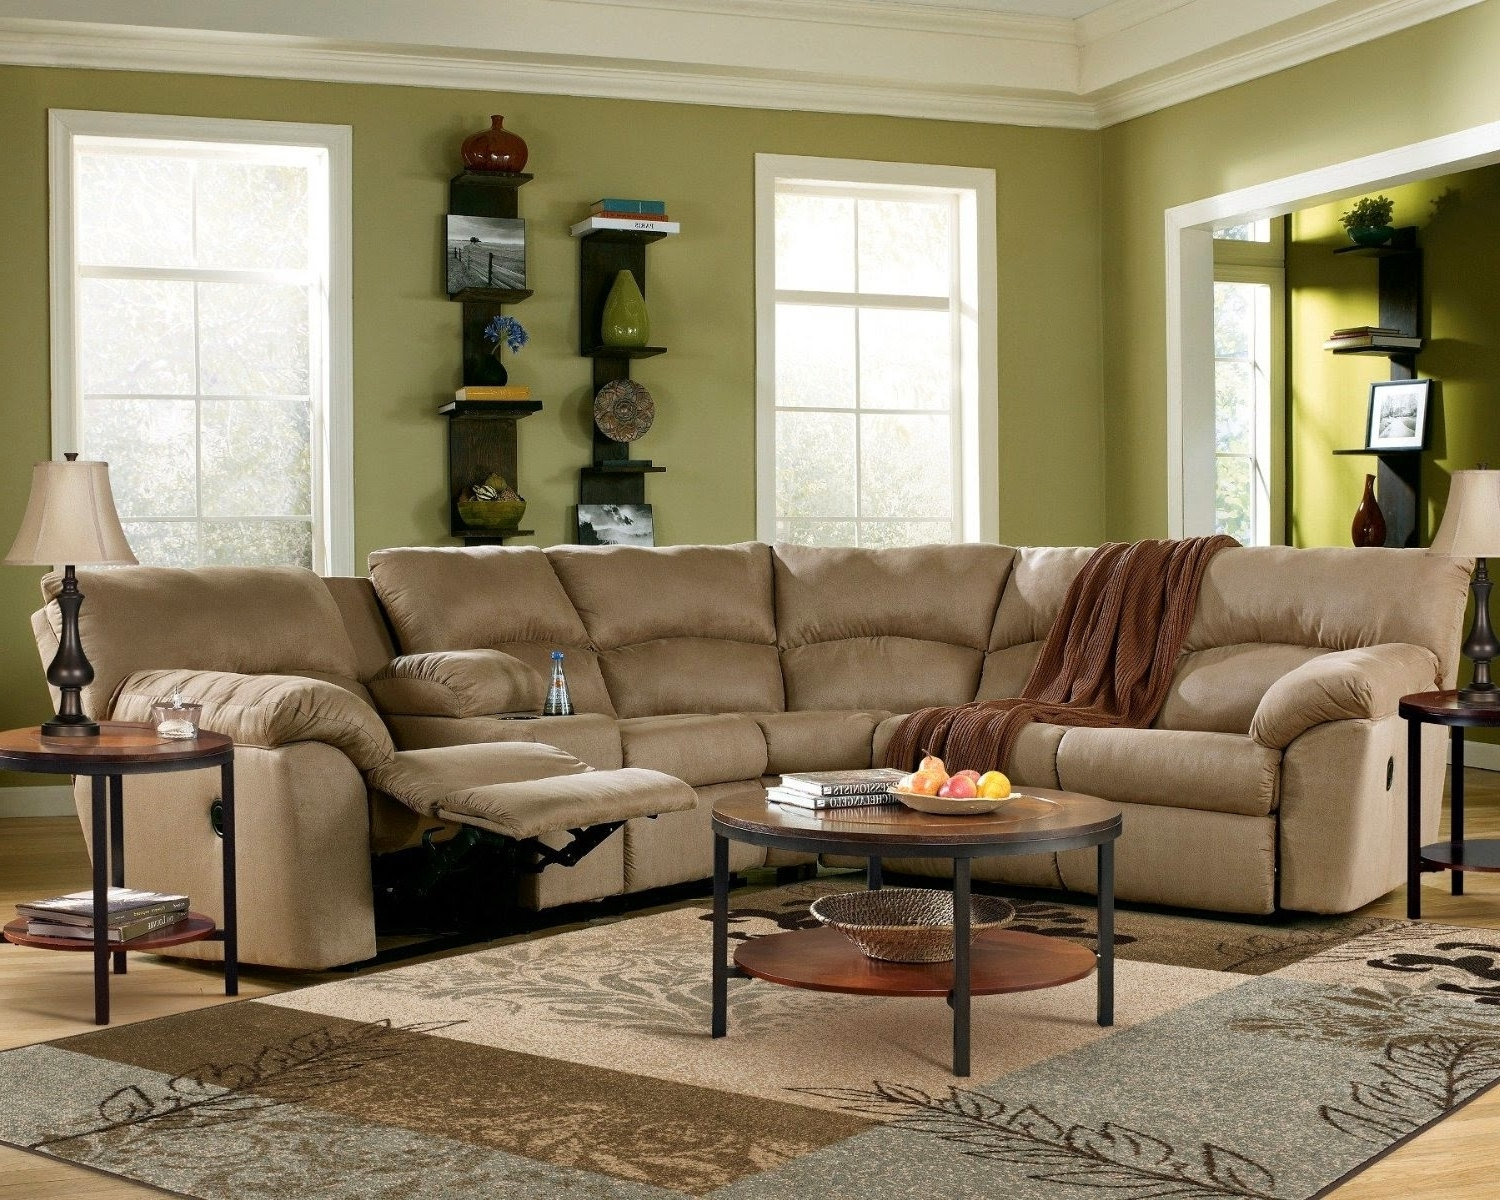 Best And Newest Sectional Sofas At Amazon For Curved Sofa: Curved Reclining Sofa (View 12 of 20)